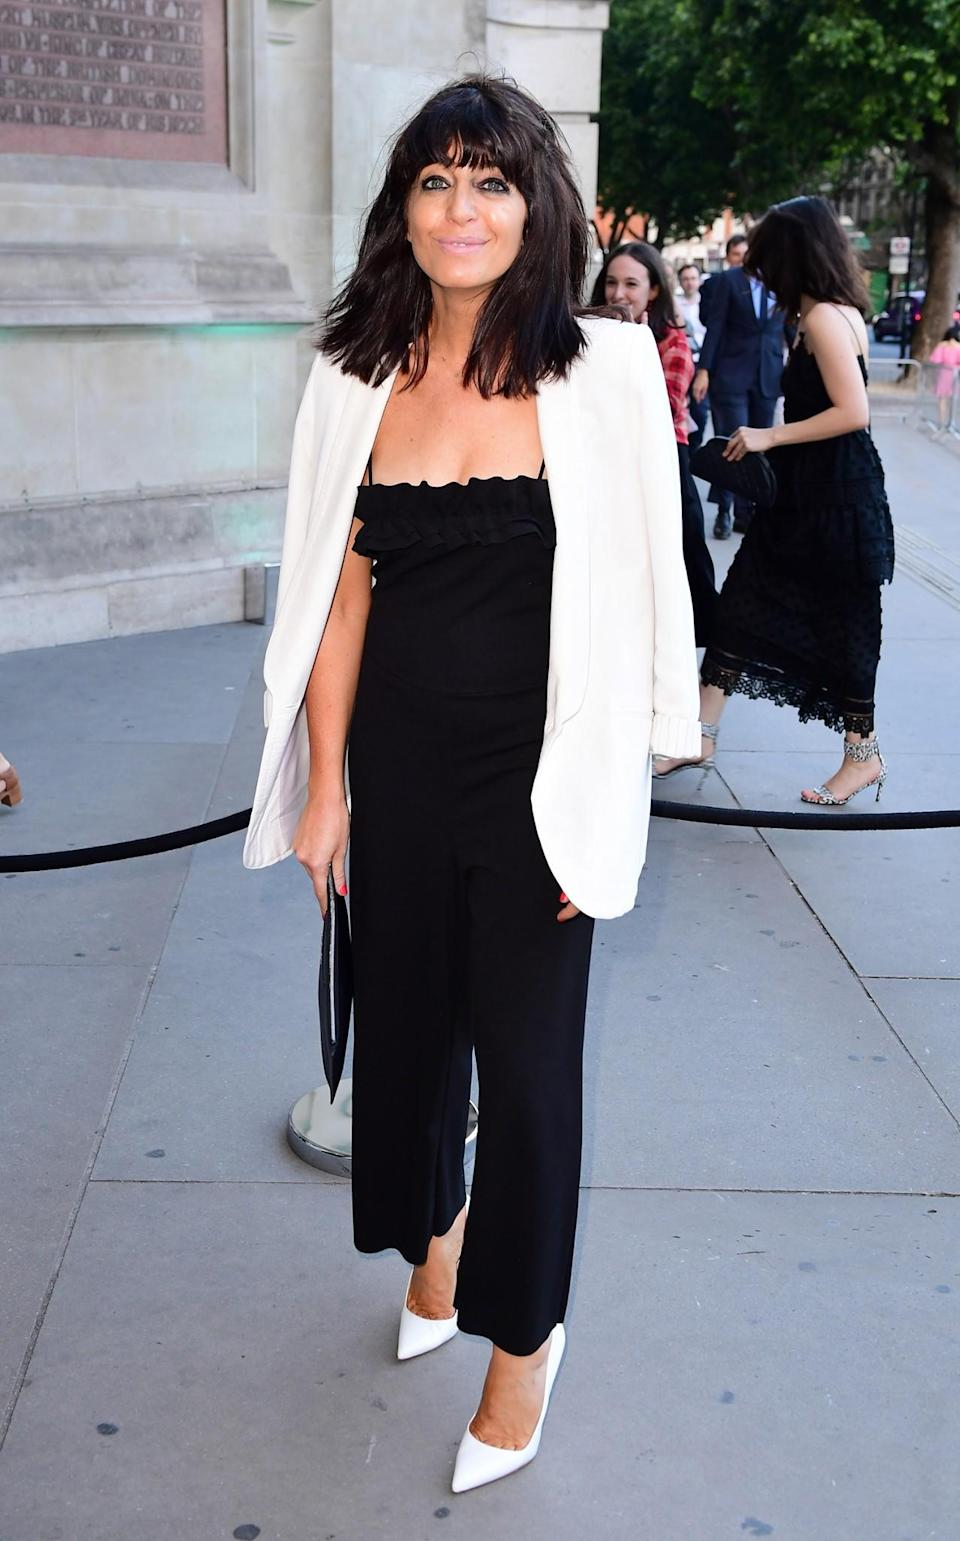 <p>The 'Strictly Come Dancing' presenter played in safe in a monochrome ensemble. But we reckon the brunette could've looked a little more summery – and less corporate – on the hottest day of the year. <br><em>[Photo: PA]</em> </p>